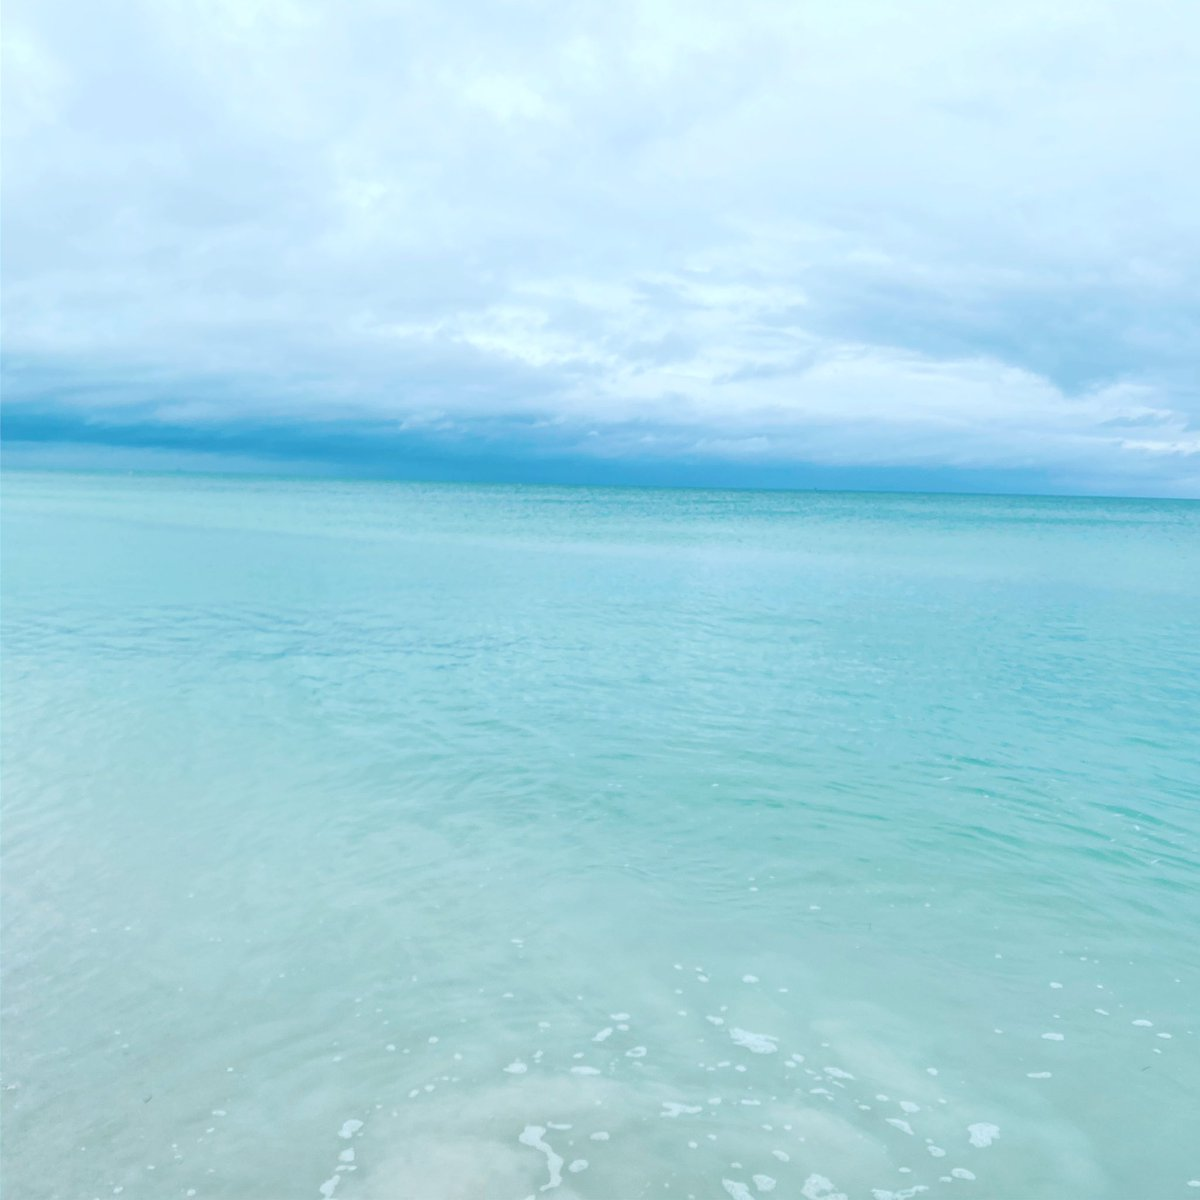 Cloudy day. #SaltLife #MondayMorning #Paradise #blessed #beachpic.twitter.com/vasuaHwHfh